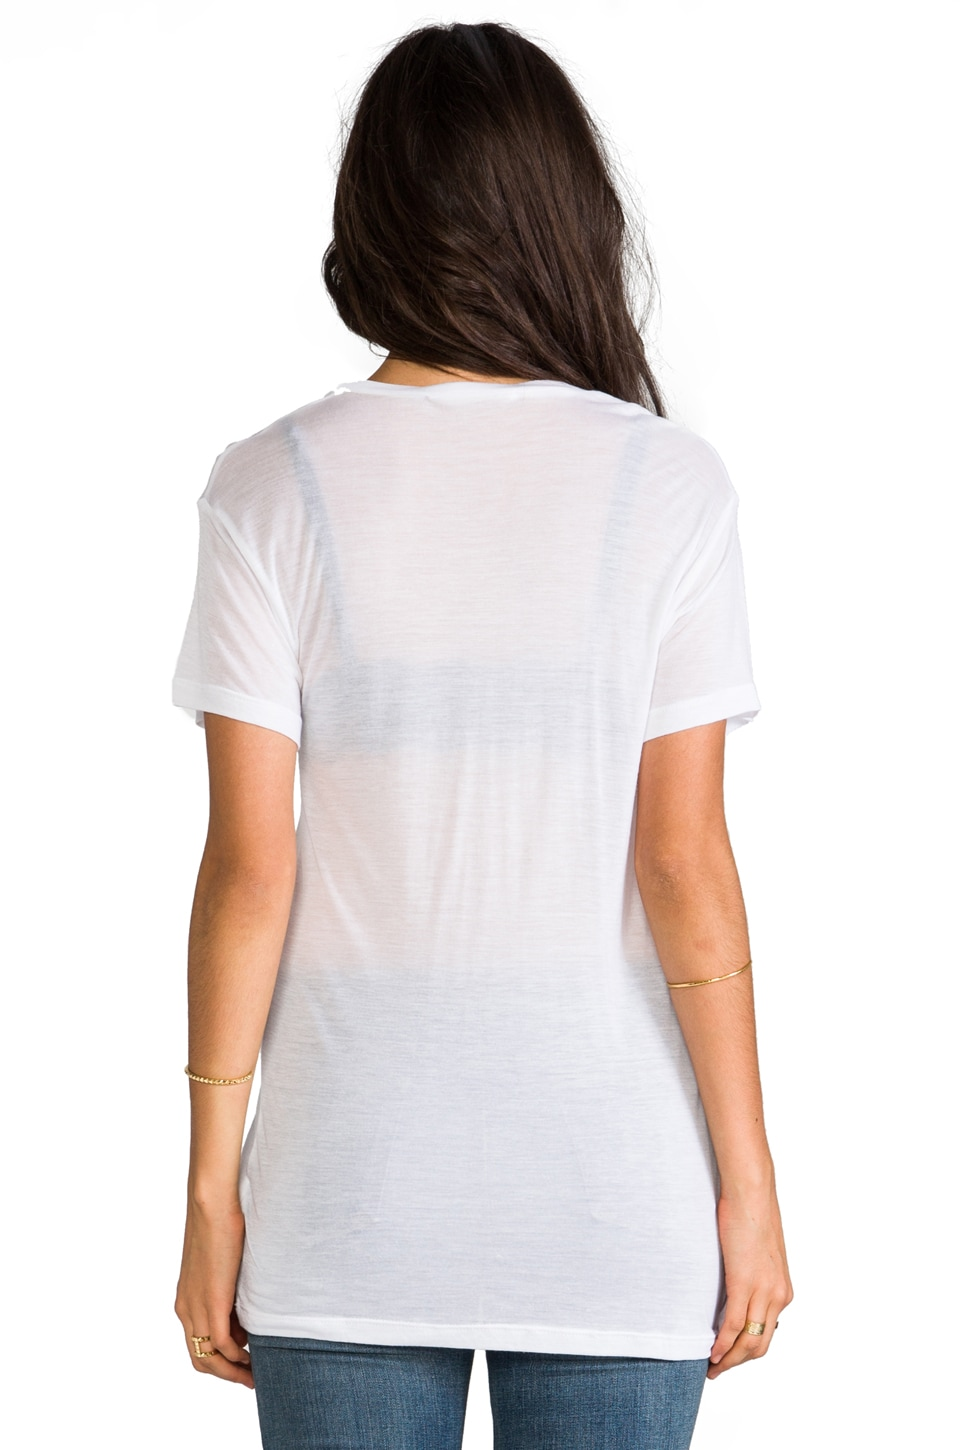 Kain Classic Pocket Tee in White